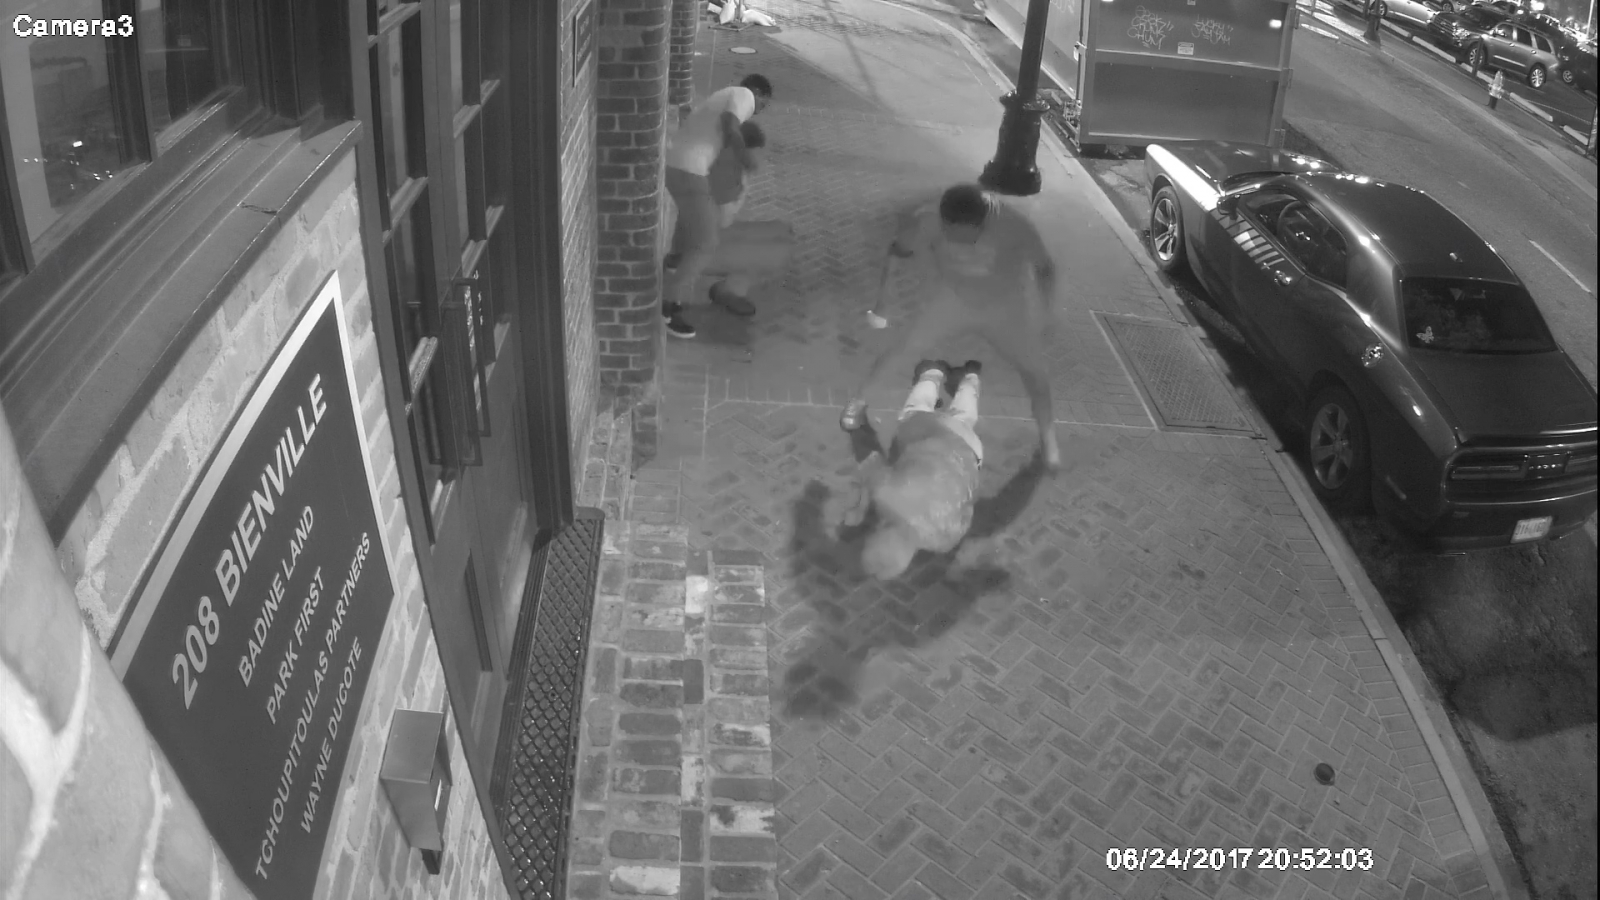 Dramatic CCTV shows tourists knocked out and robbed in New Orleans